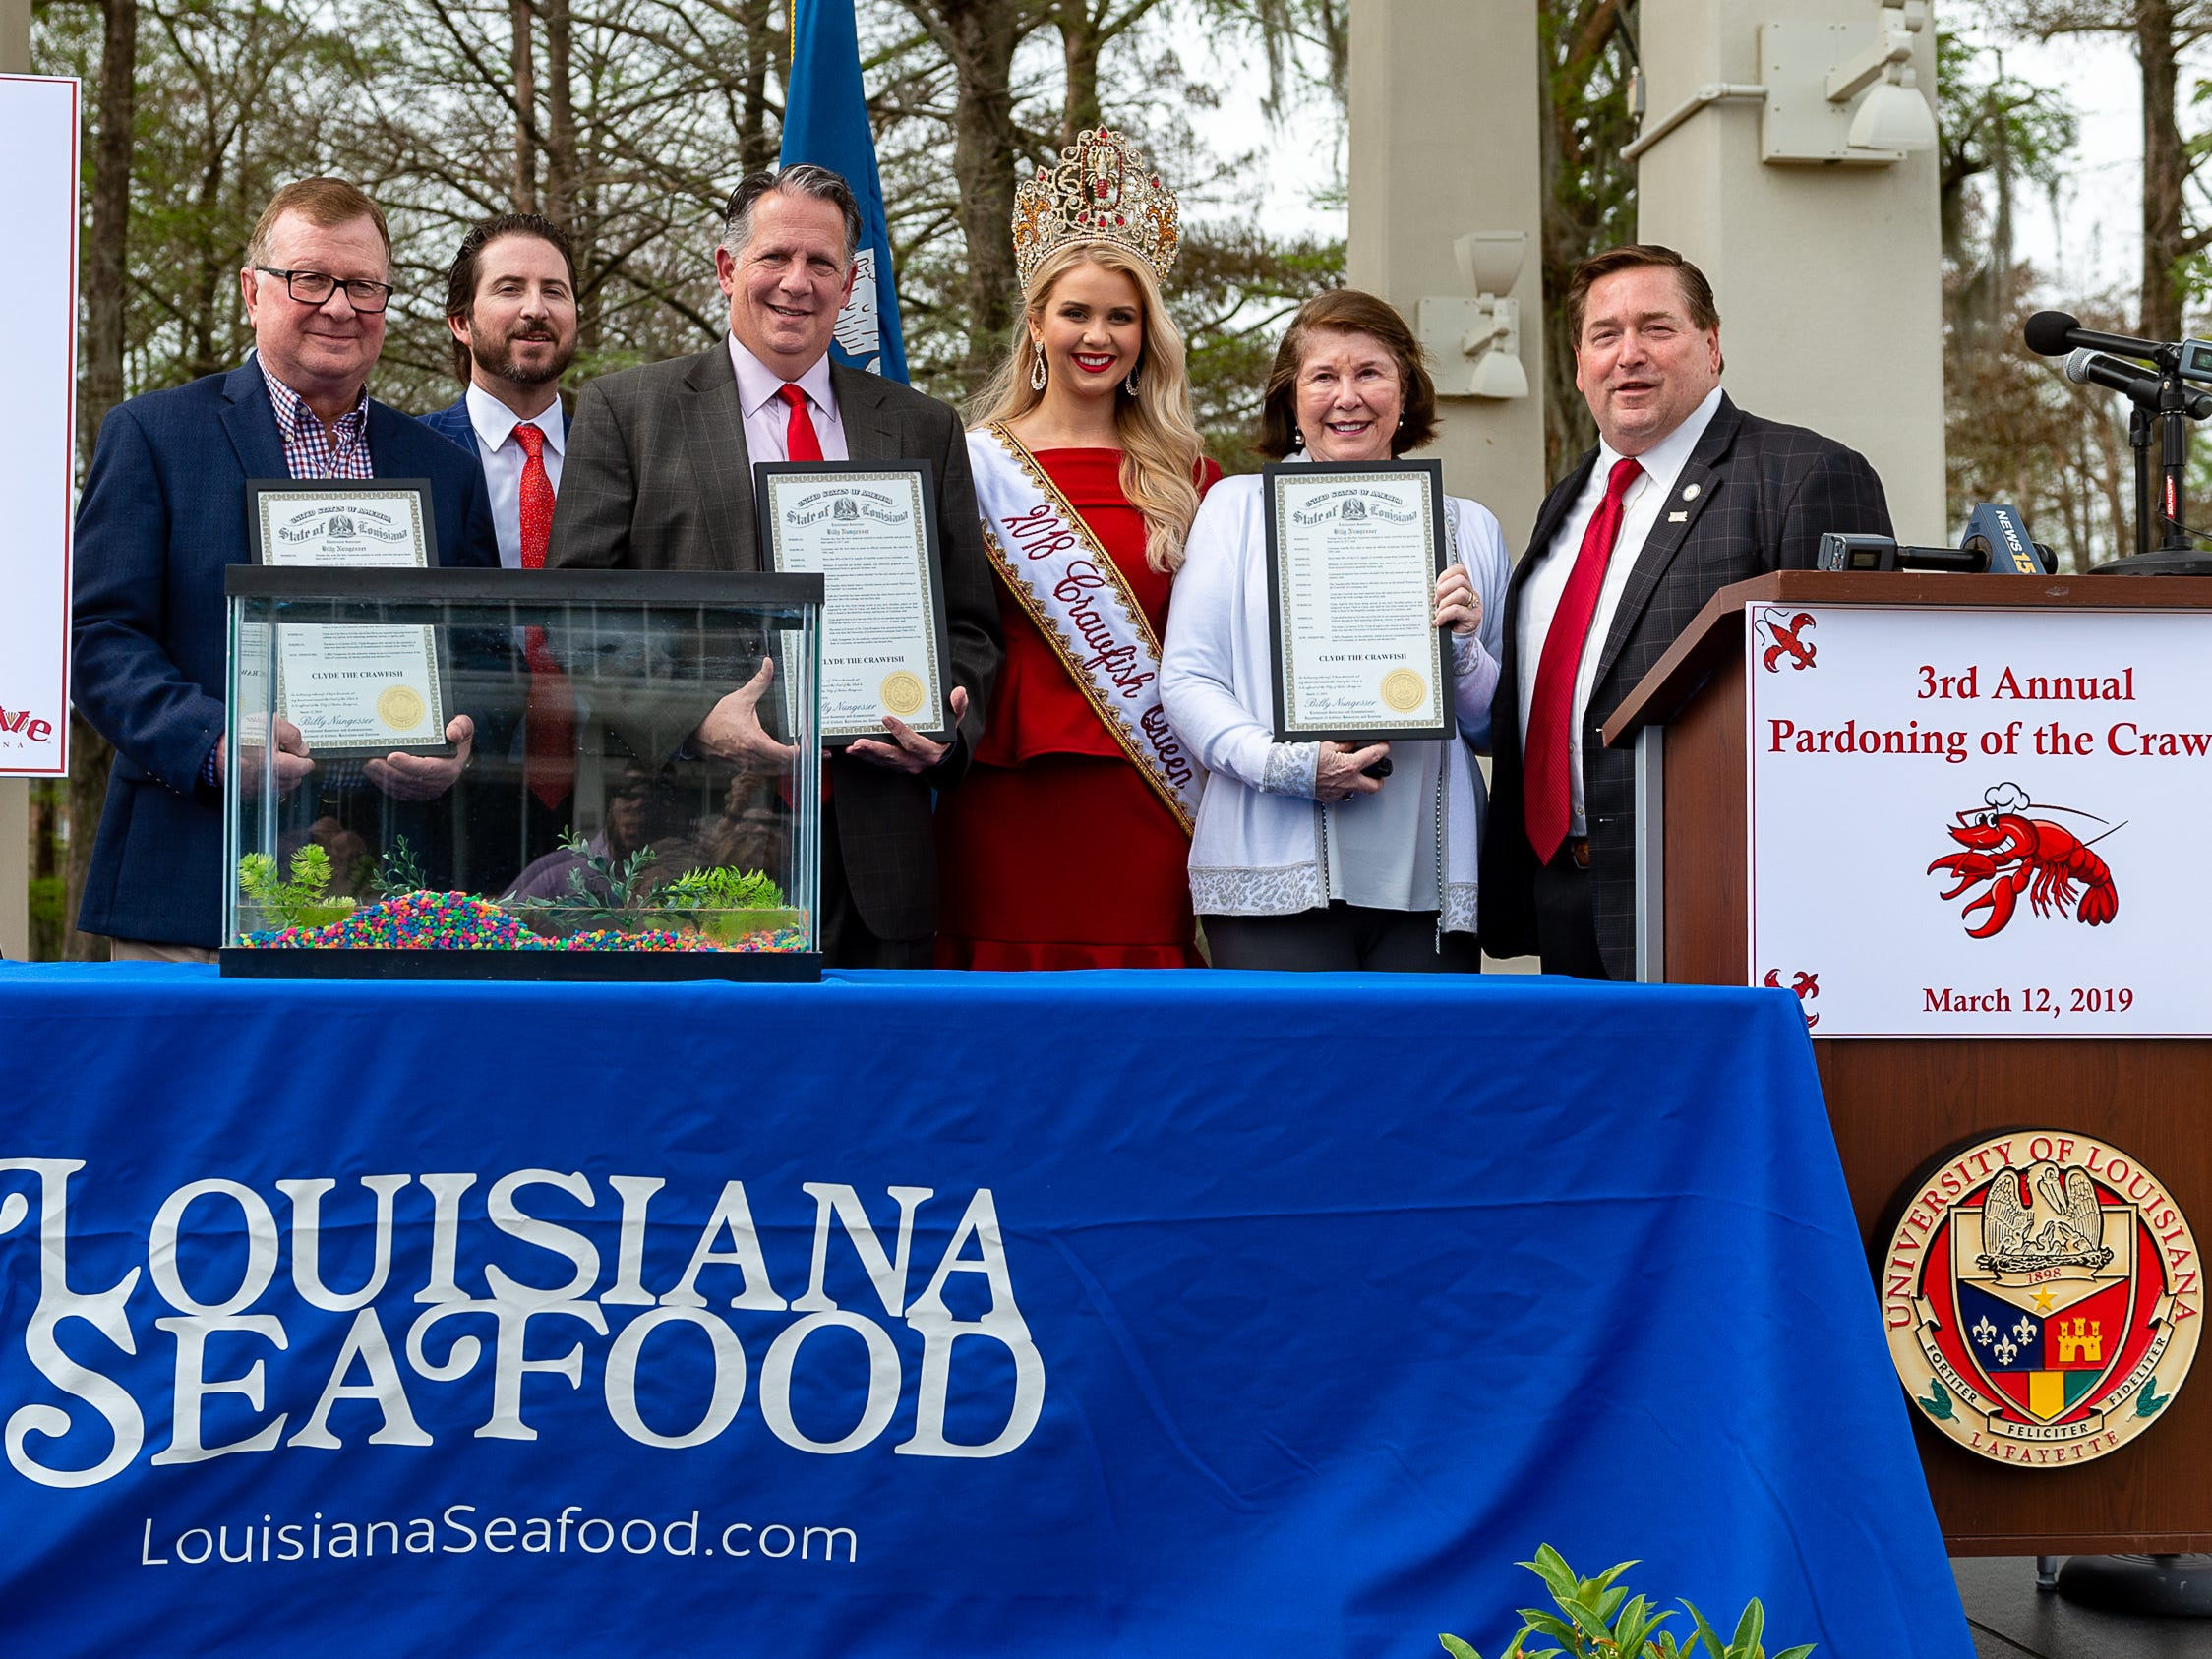 Louisiana Lieutenant Governor Billy Nungesser and the Louisiana Seafood Promotion and Marketing Board host the 3rd Annual Pardoning of the Crawfish at Cypress Lake Plaza on the campus of the University of Louisiana at Lafayette. Started in 2017 by Lt. Governor Nungesser, this unique event celebrates crawfish season in Louisiana and across the Gulf South. Tuesday, March 12, 2019.